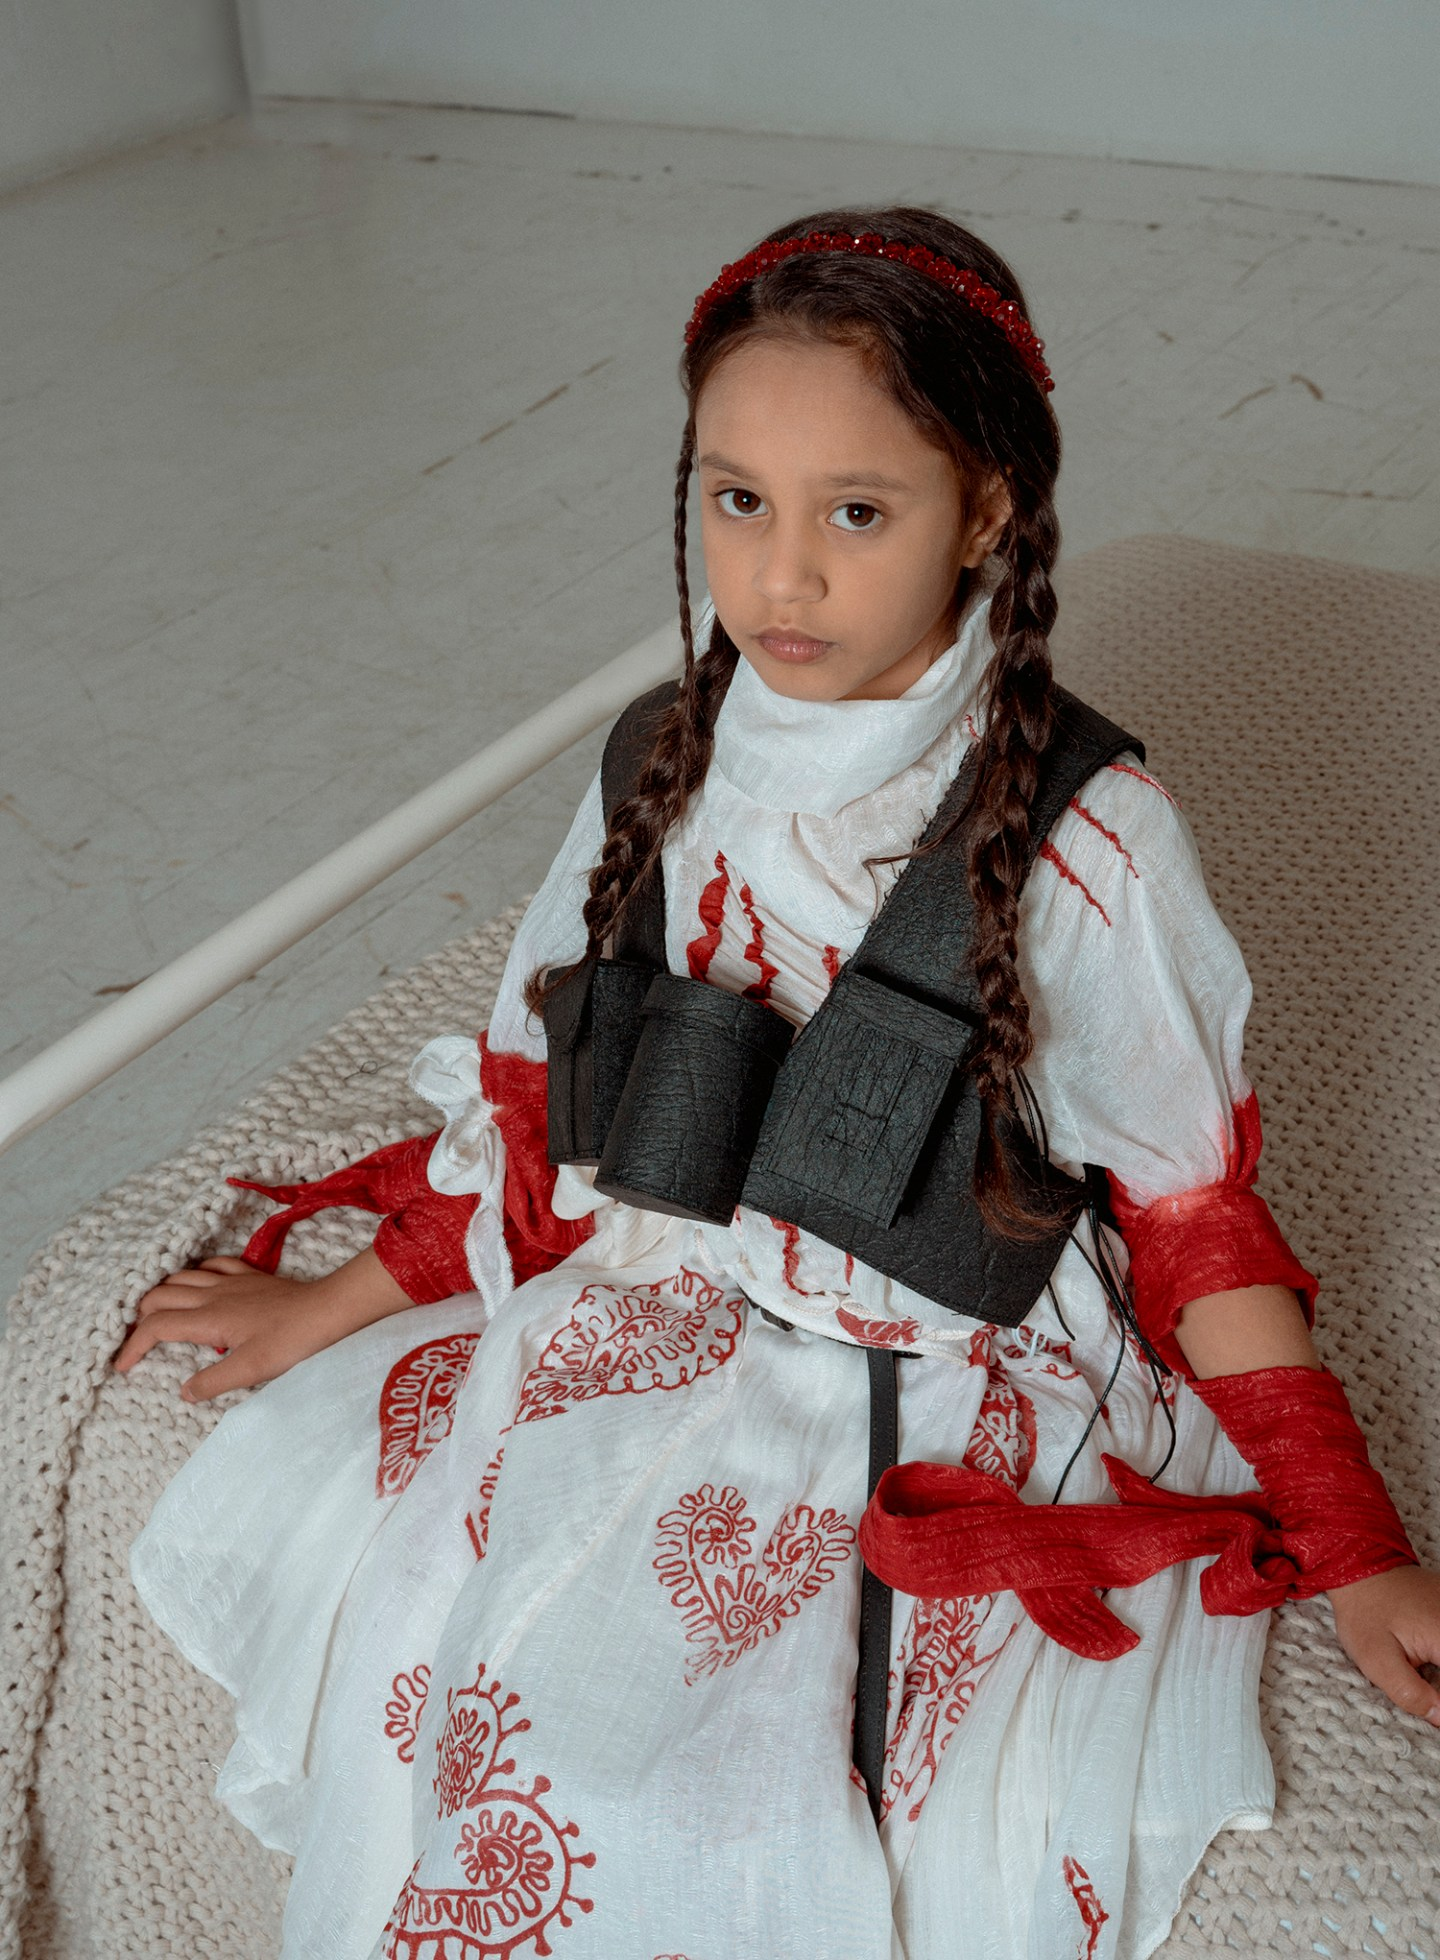 An eight-year-old brown hair wearing a high neck white silk blouse, a red heart pattern printed box pleat skirt, and a black vest, standing sitting on a hospital bed.